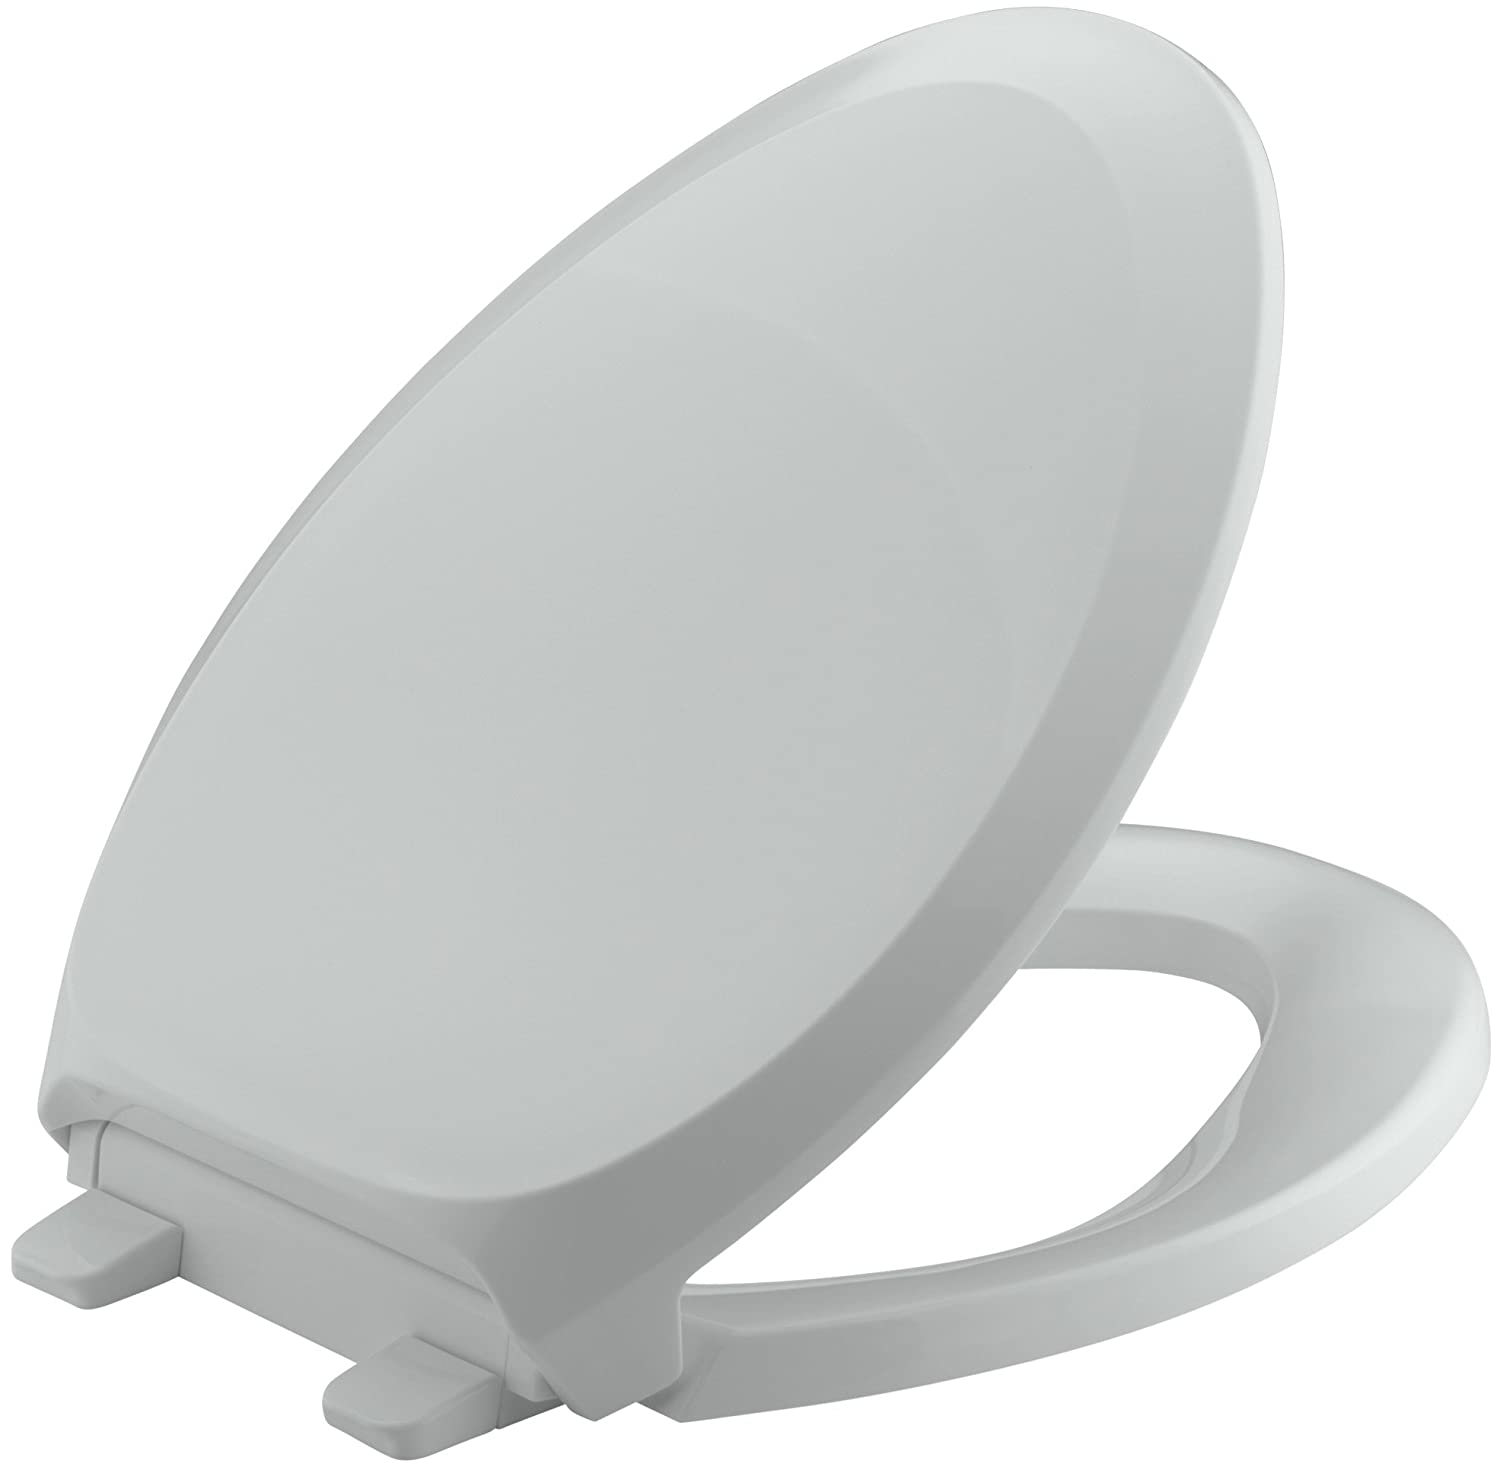 Cool Kohler K 4713 95 French Curve Quiet Close With Grip Tight Bumpers Elongated Toilet Seat Ice Grey Theyellowbook Wood Chair Design Ideas Theyellowbookinfo